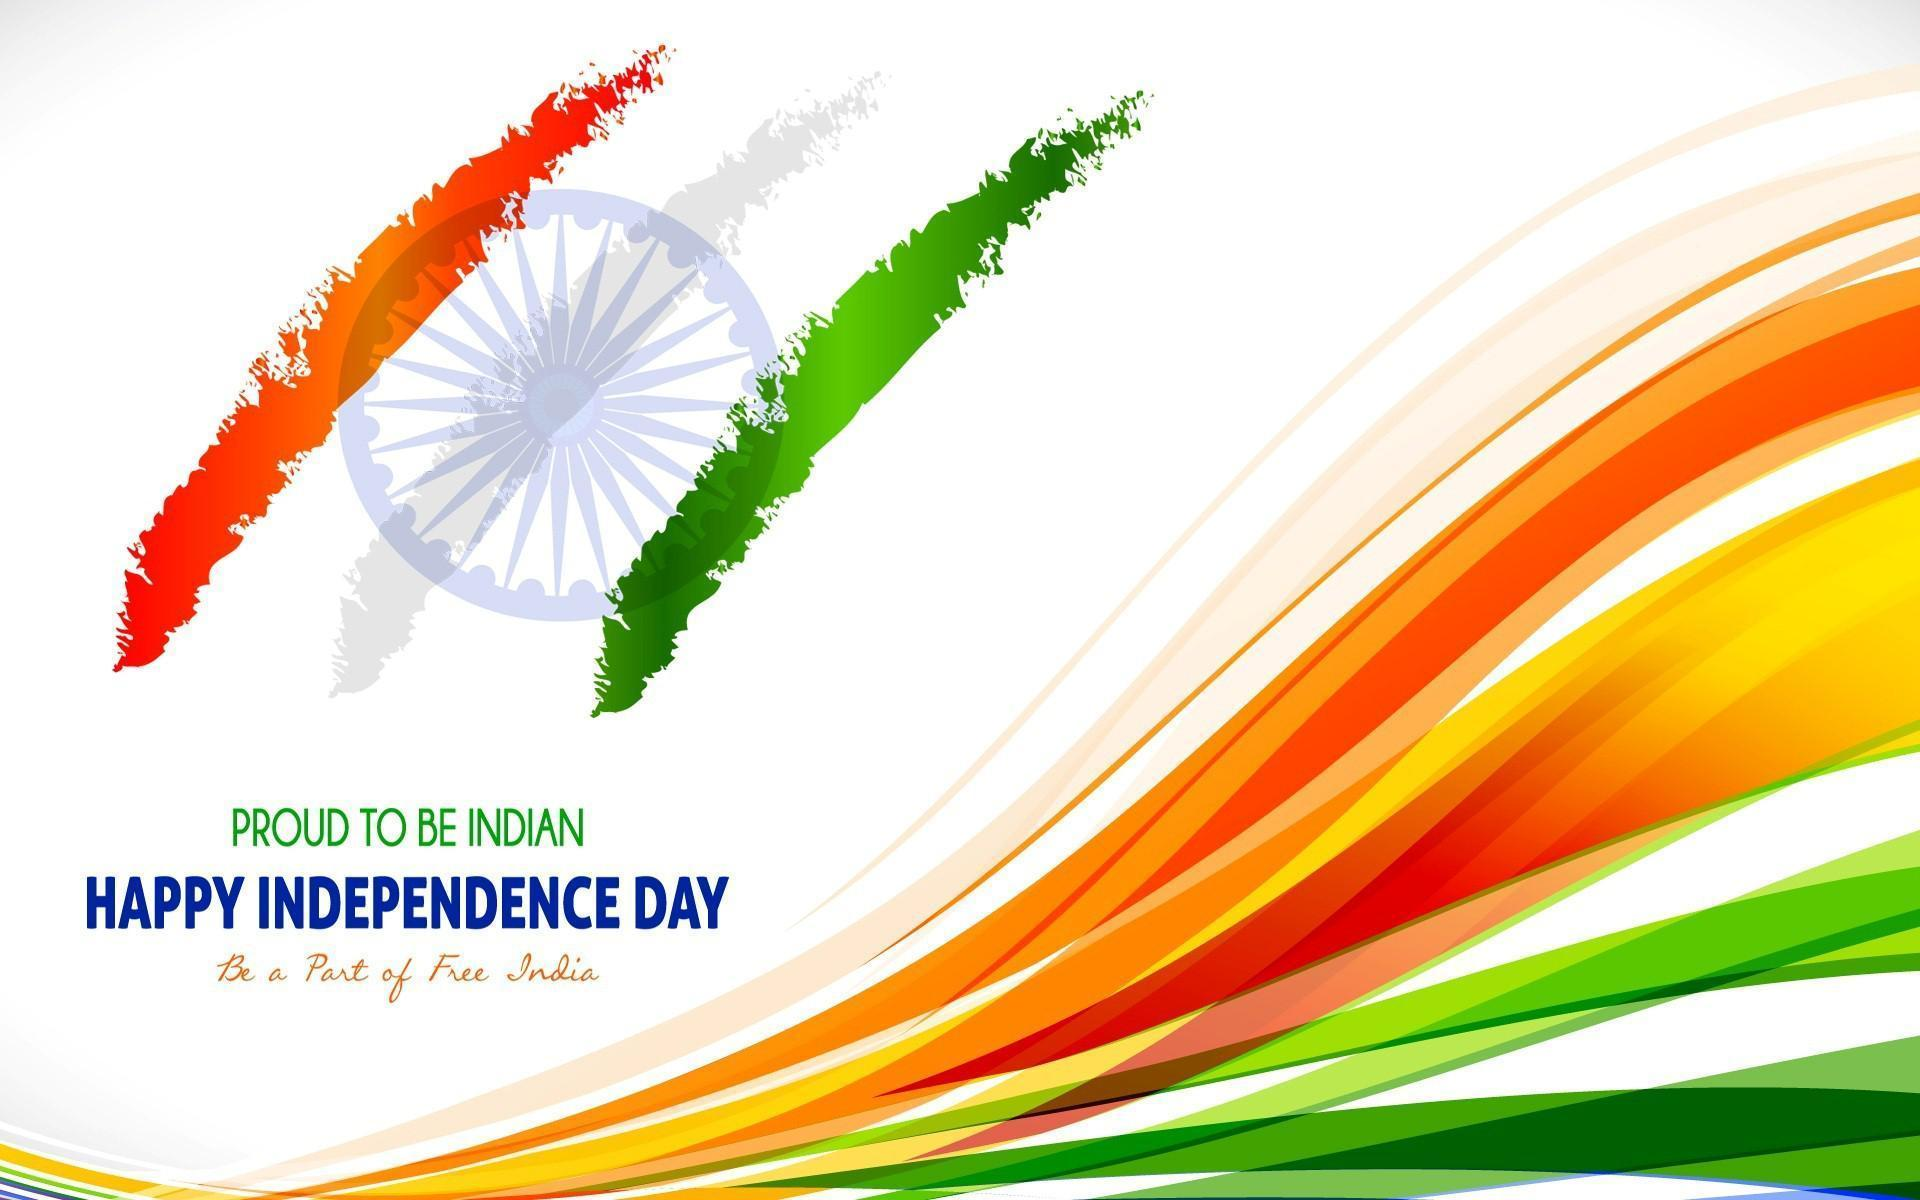 Indian independence day hd wallpapers 2015 wallpaper cave for India wallpaper 3d